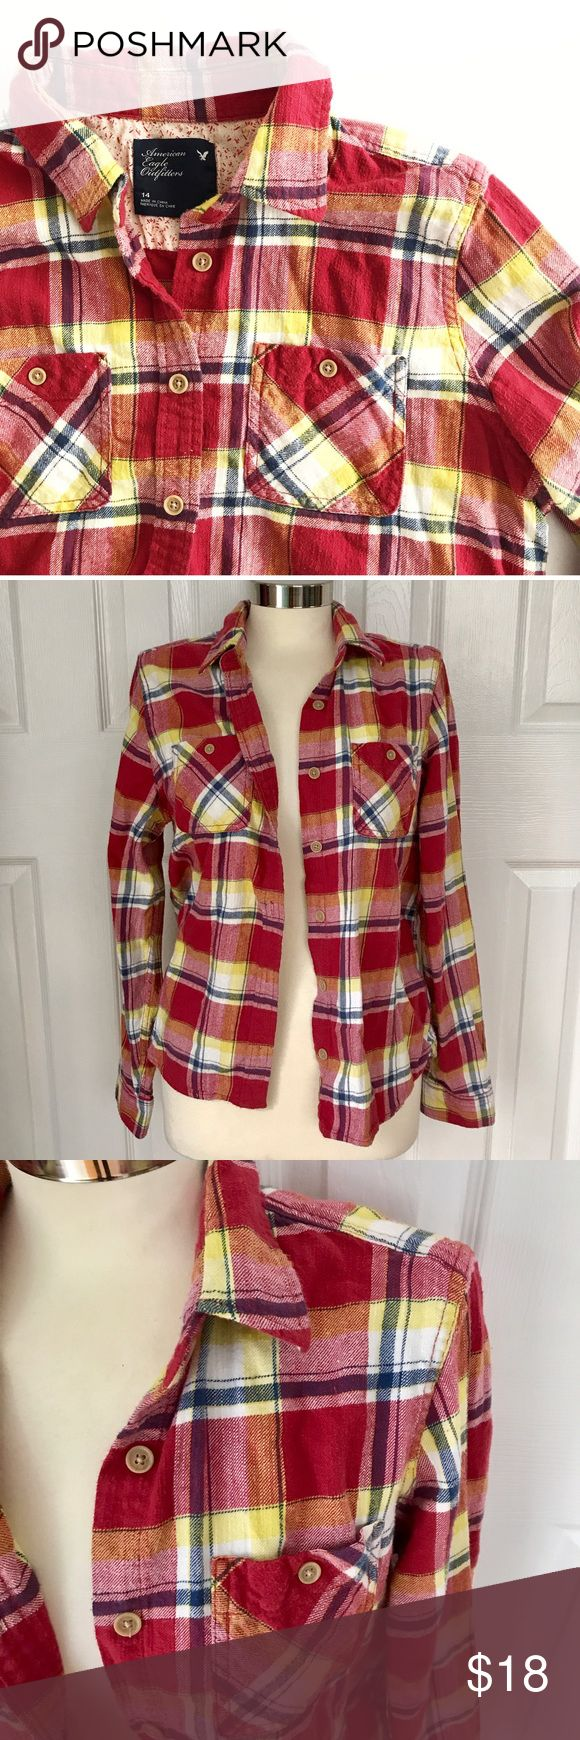 American Eagle Outfitters Red Plaid Flannel Longsleeve button down shirt. Plaid red white blue yellow. 100% cotton. AE Outfitters size 14, fits size large. Could also work for a small or medium for more of an oversized look. First photo on left not actual item just showing for styling inspiration! American Eagle Outfitters Tops